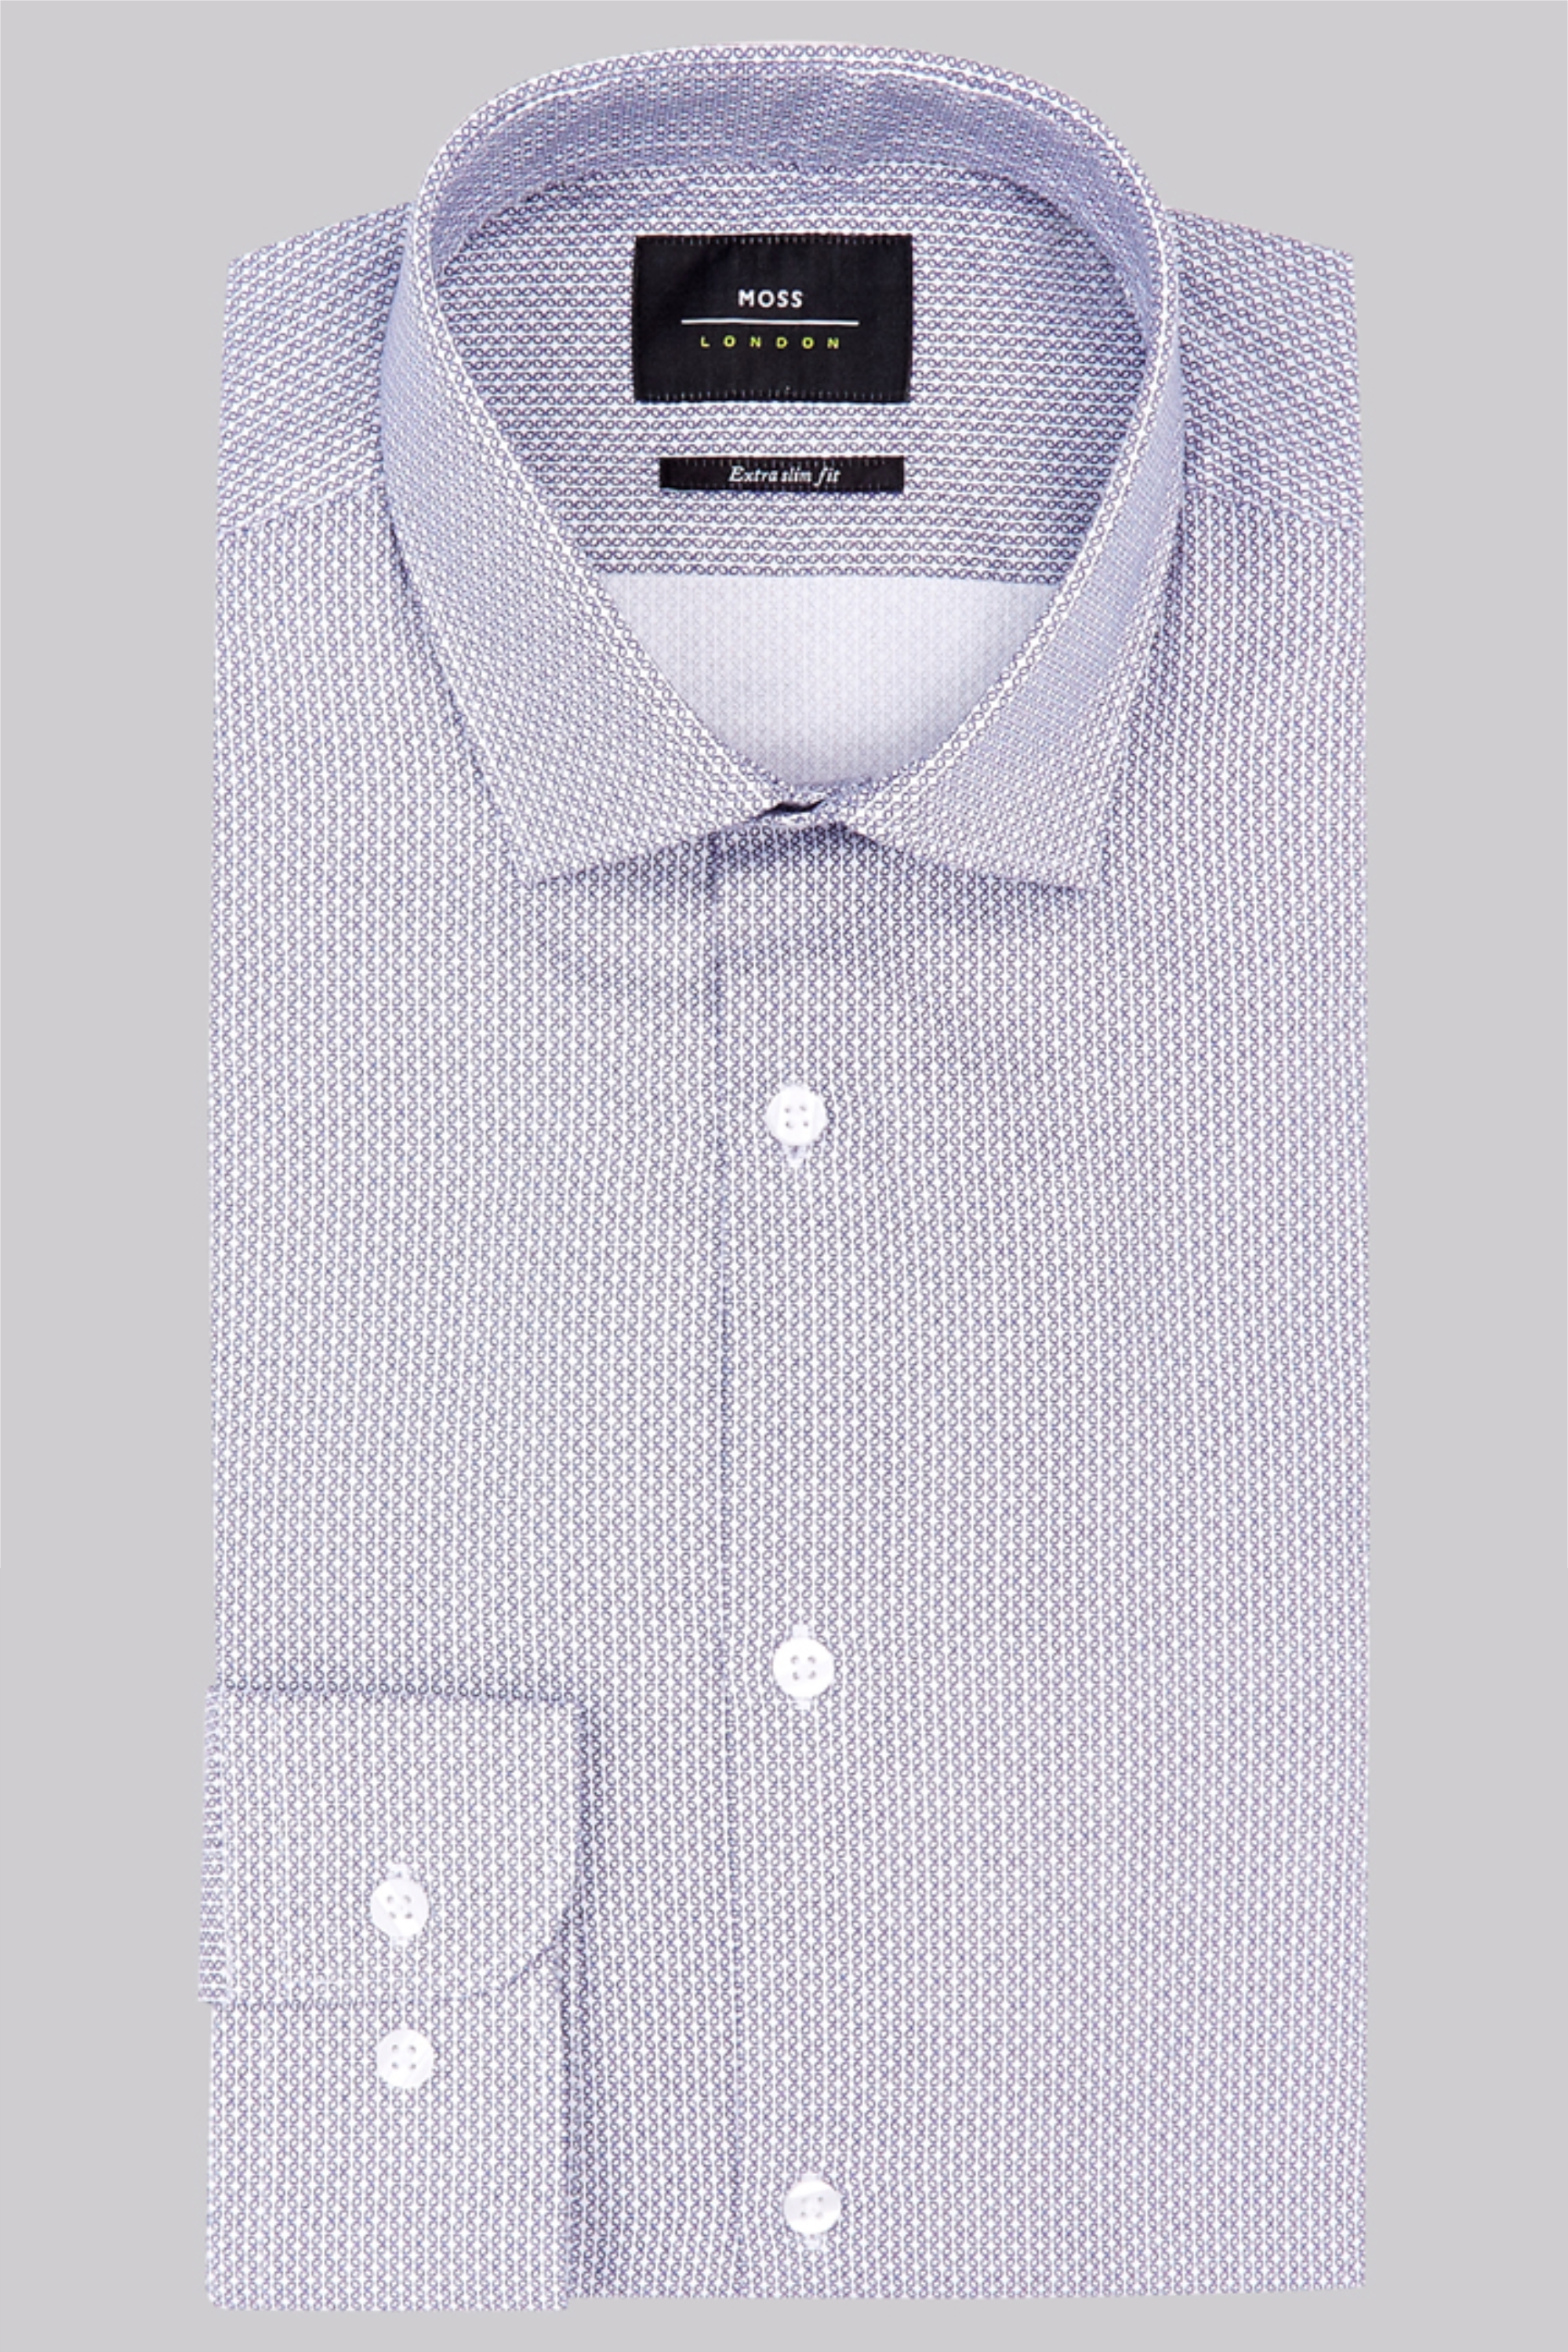 Moss Bros Moss London Premium Extra Slim Fit Navy Single Cuff Oxford Cotton Printed Shirt